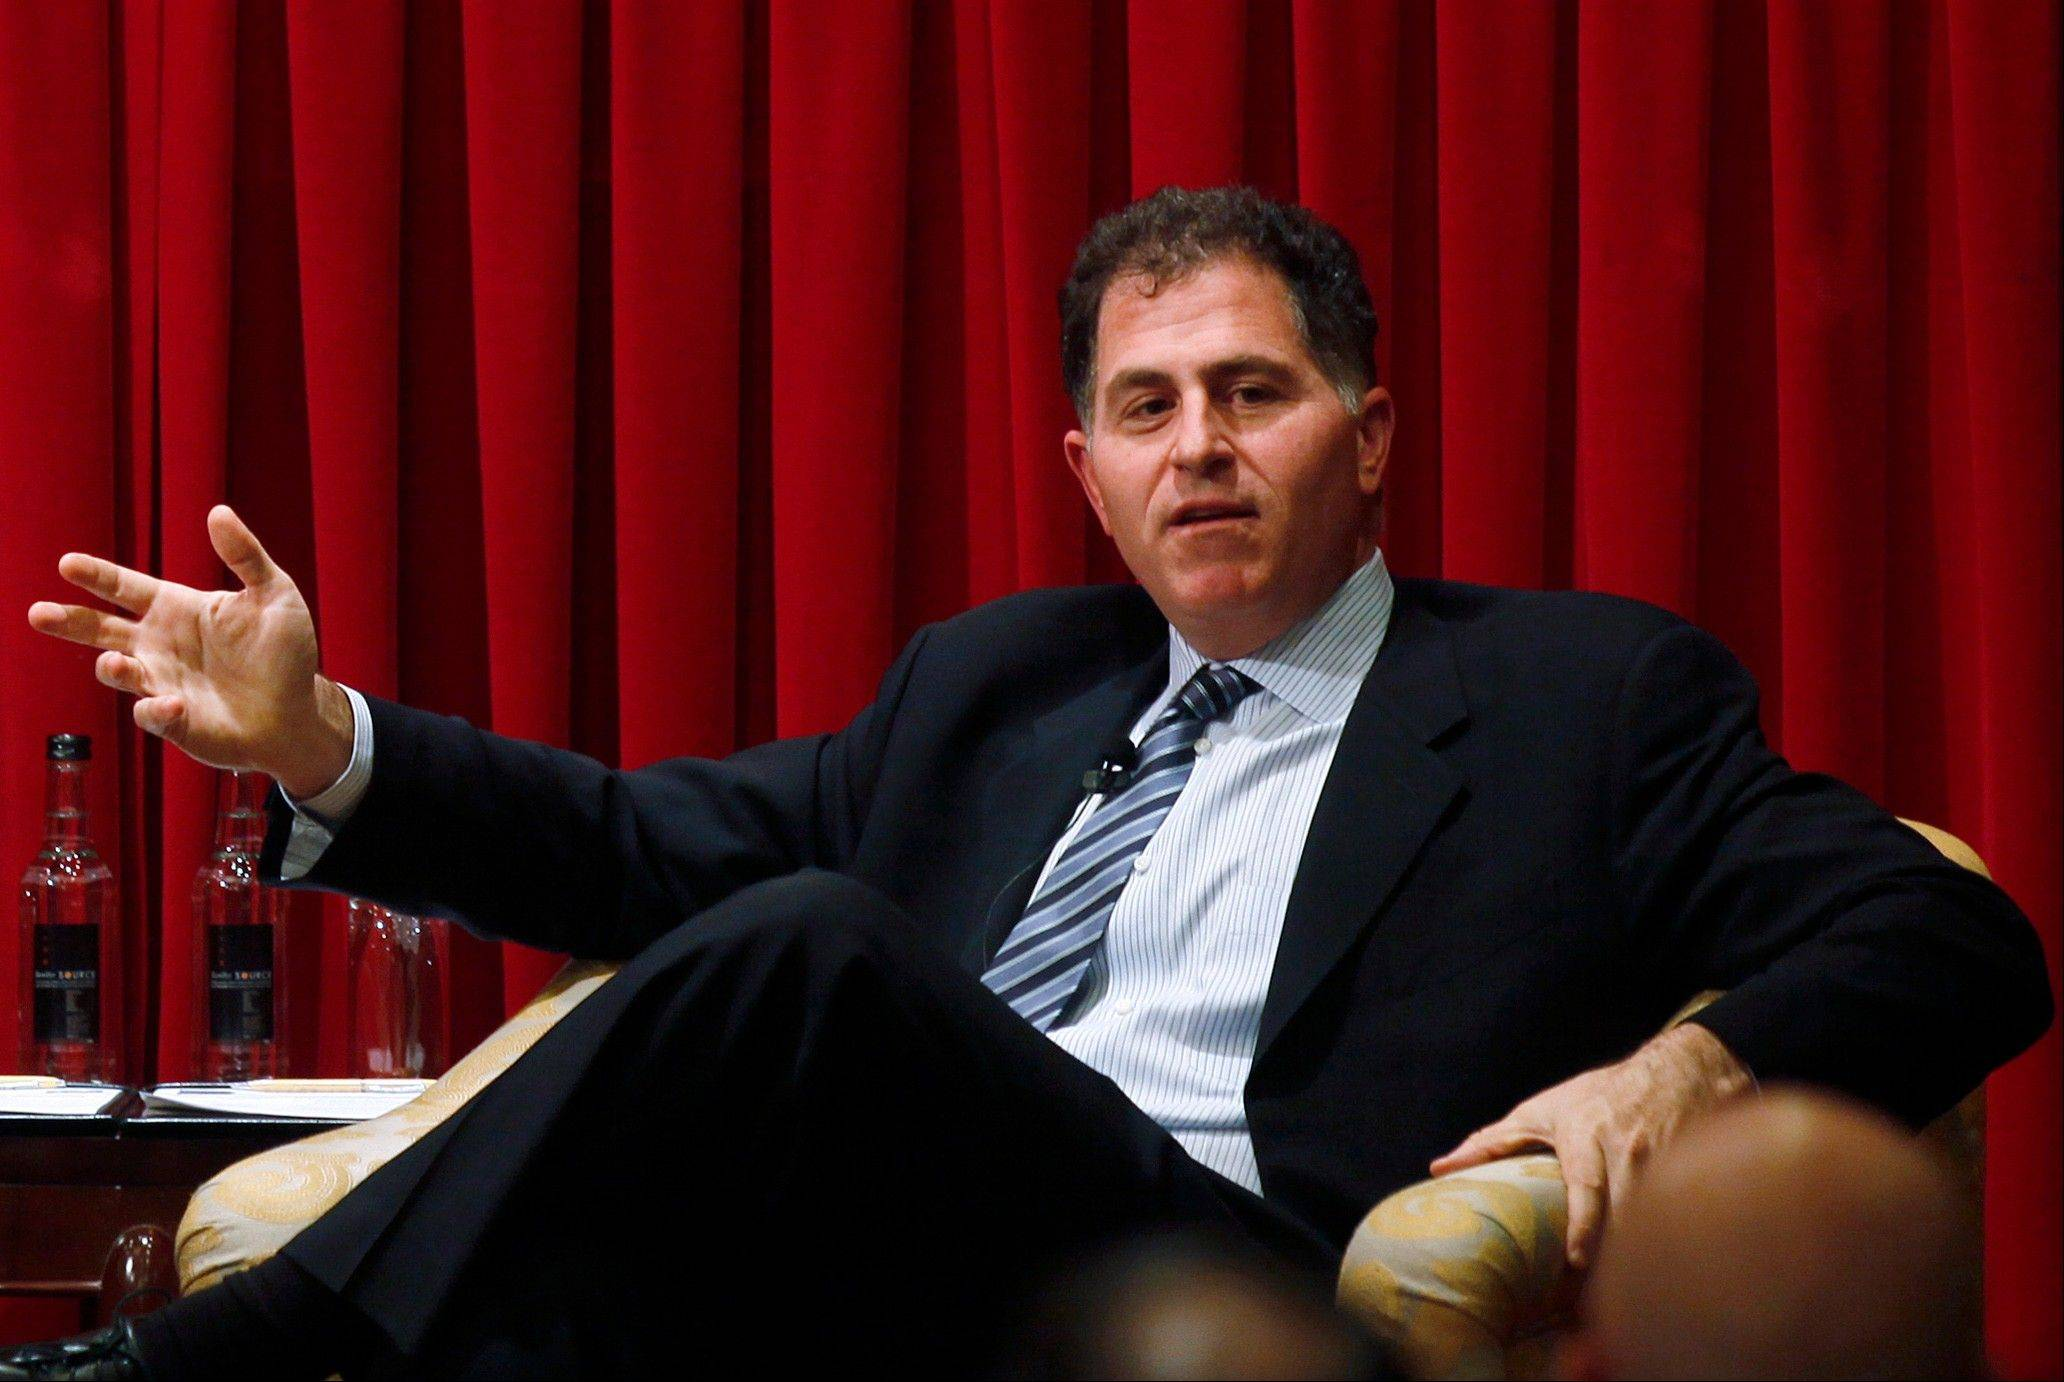 Associated Press/Nov. 2, 2010Michael Dell, chairman and chief executive officer of Dell Inc.